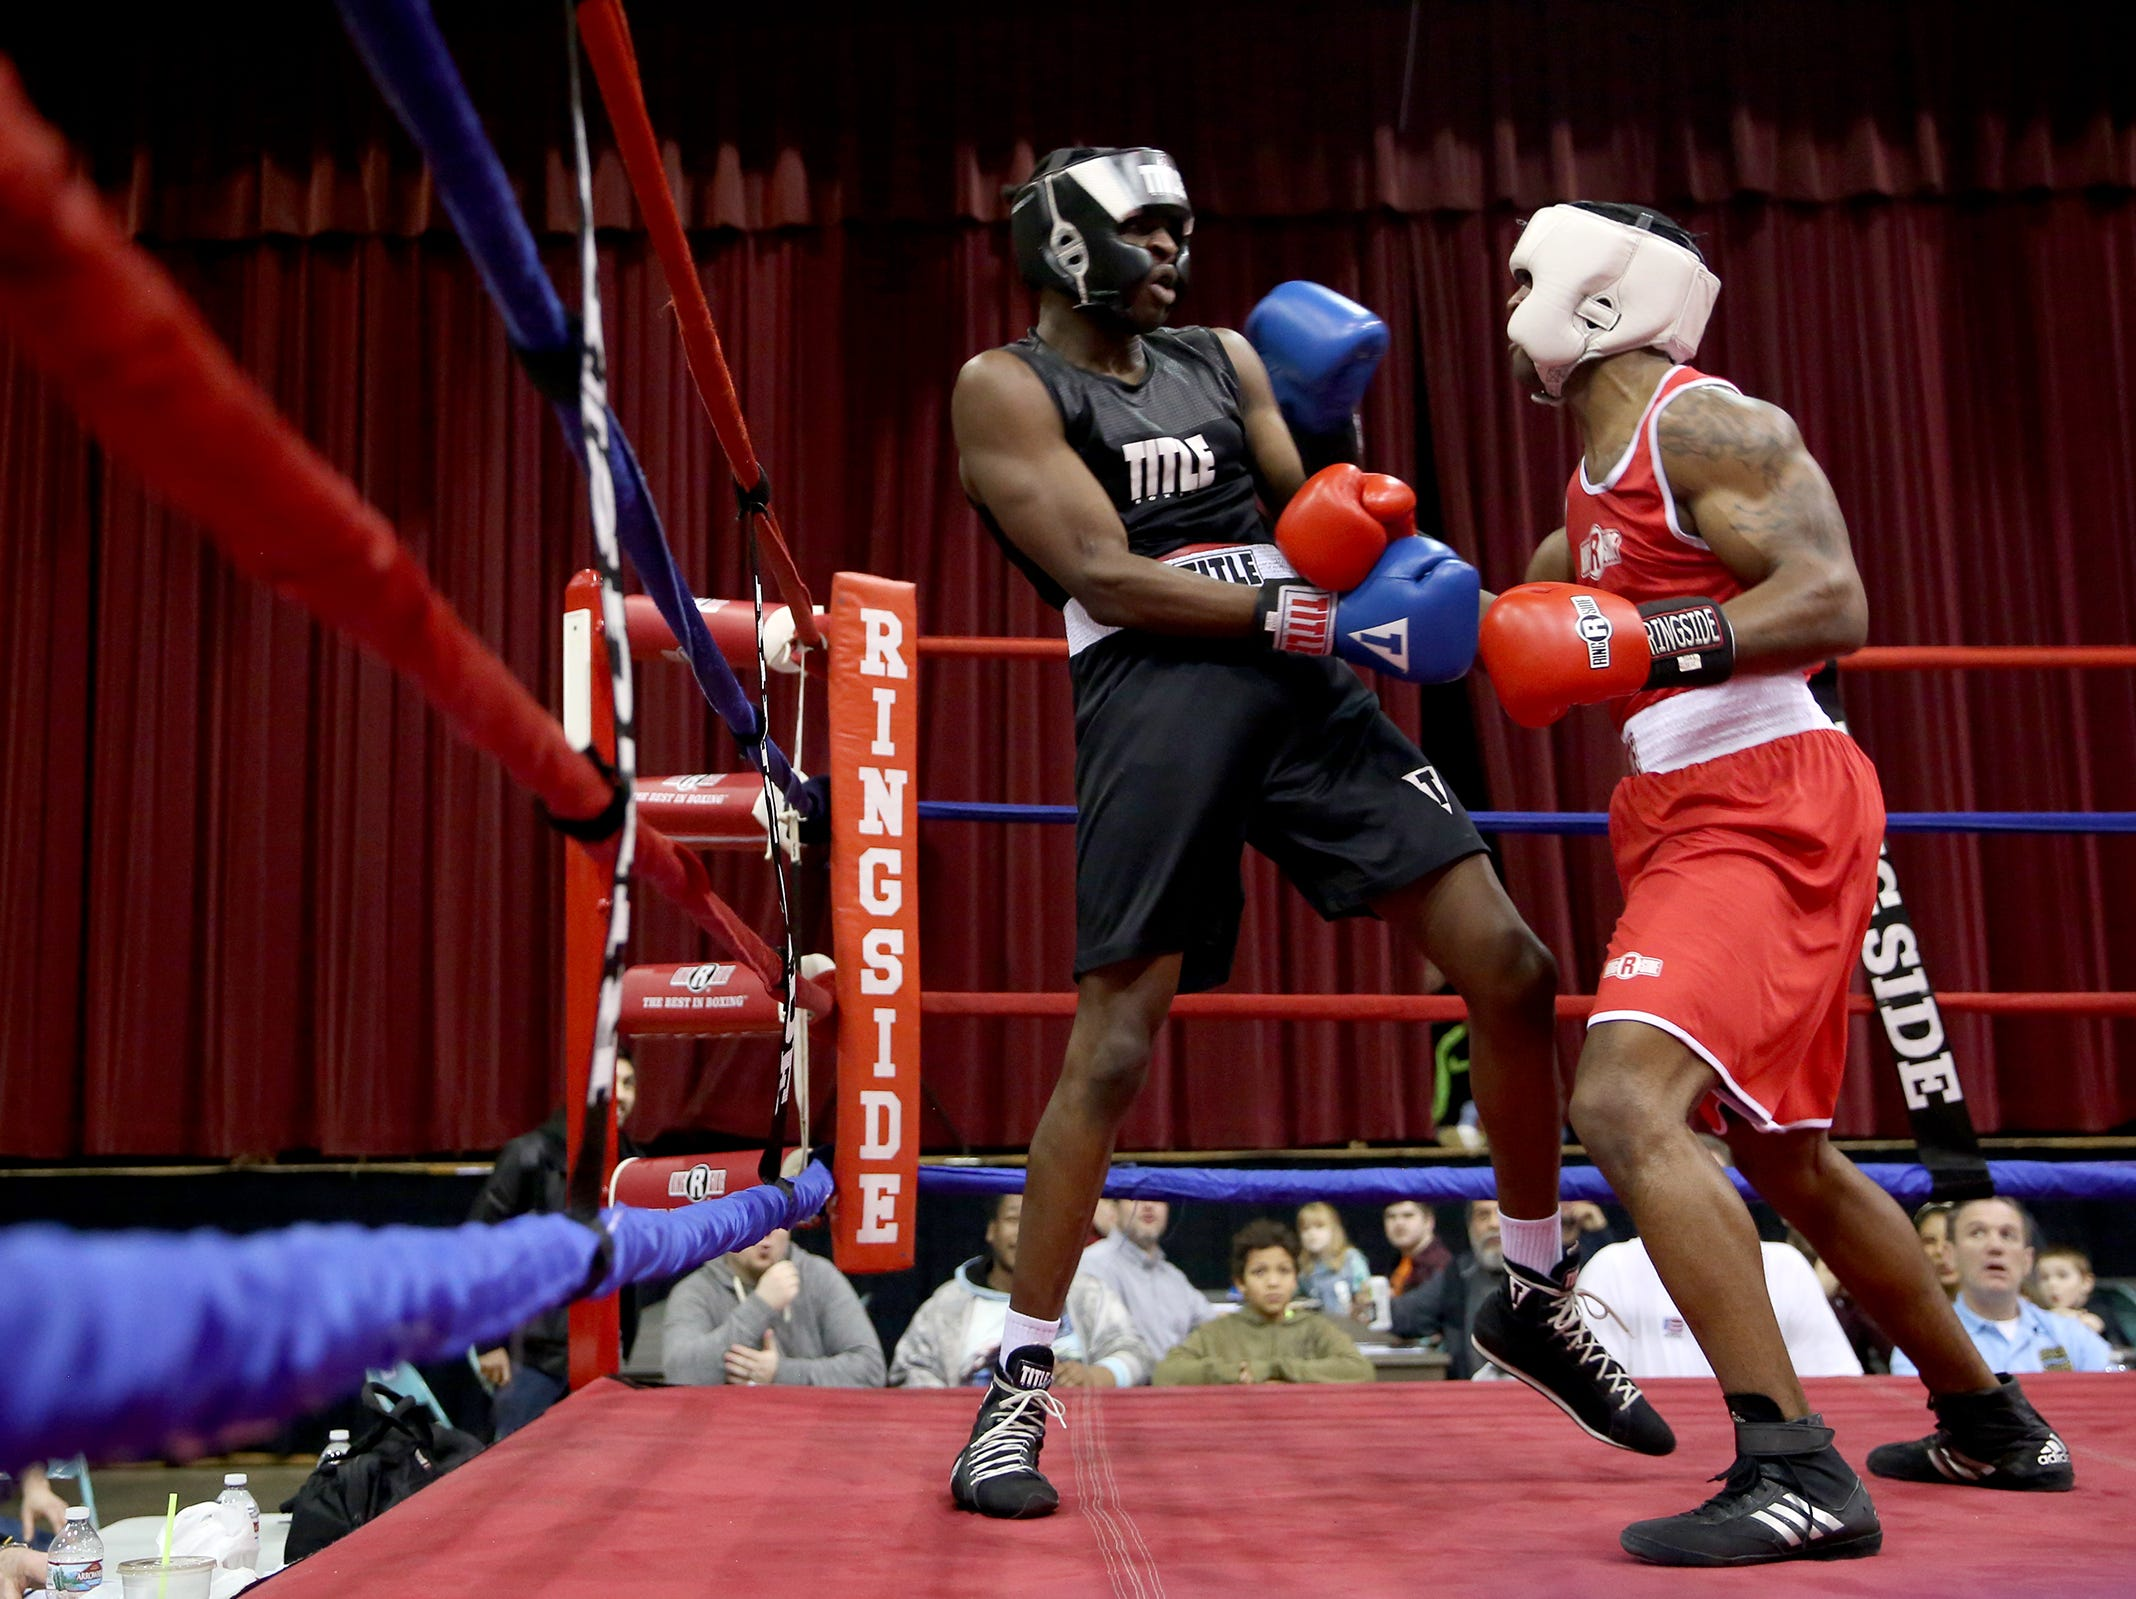 Xecareus Walker of Kent, Washington (left) takes on Michad McMillan of Tigard (right) in the first bout of the Oregon Golden Gloves championship matches at the Salem Armory on Saturday, Feb. 2, 2019.